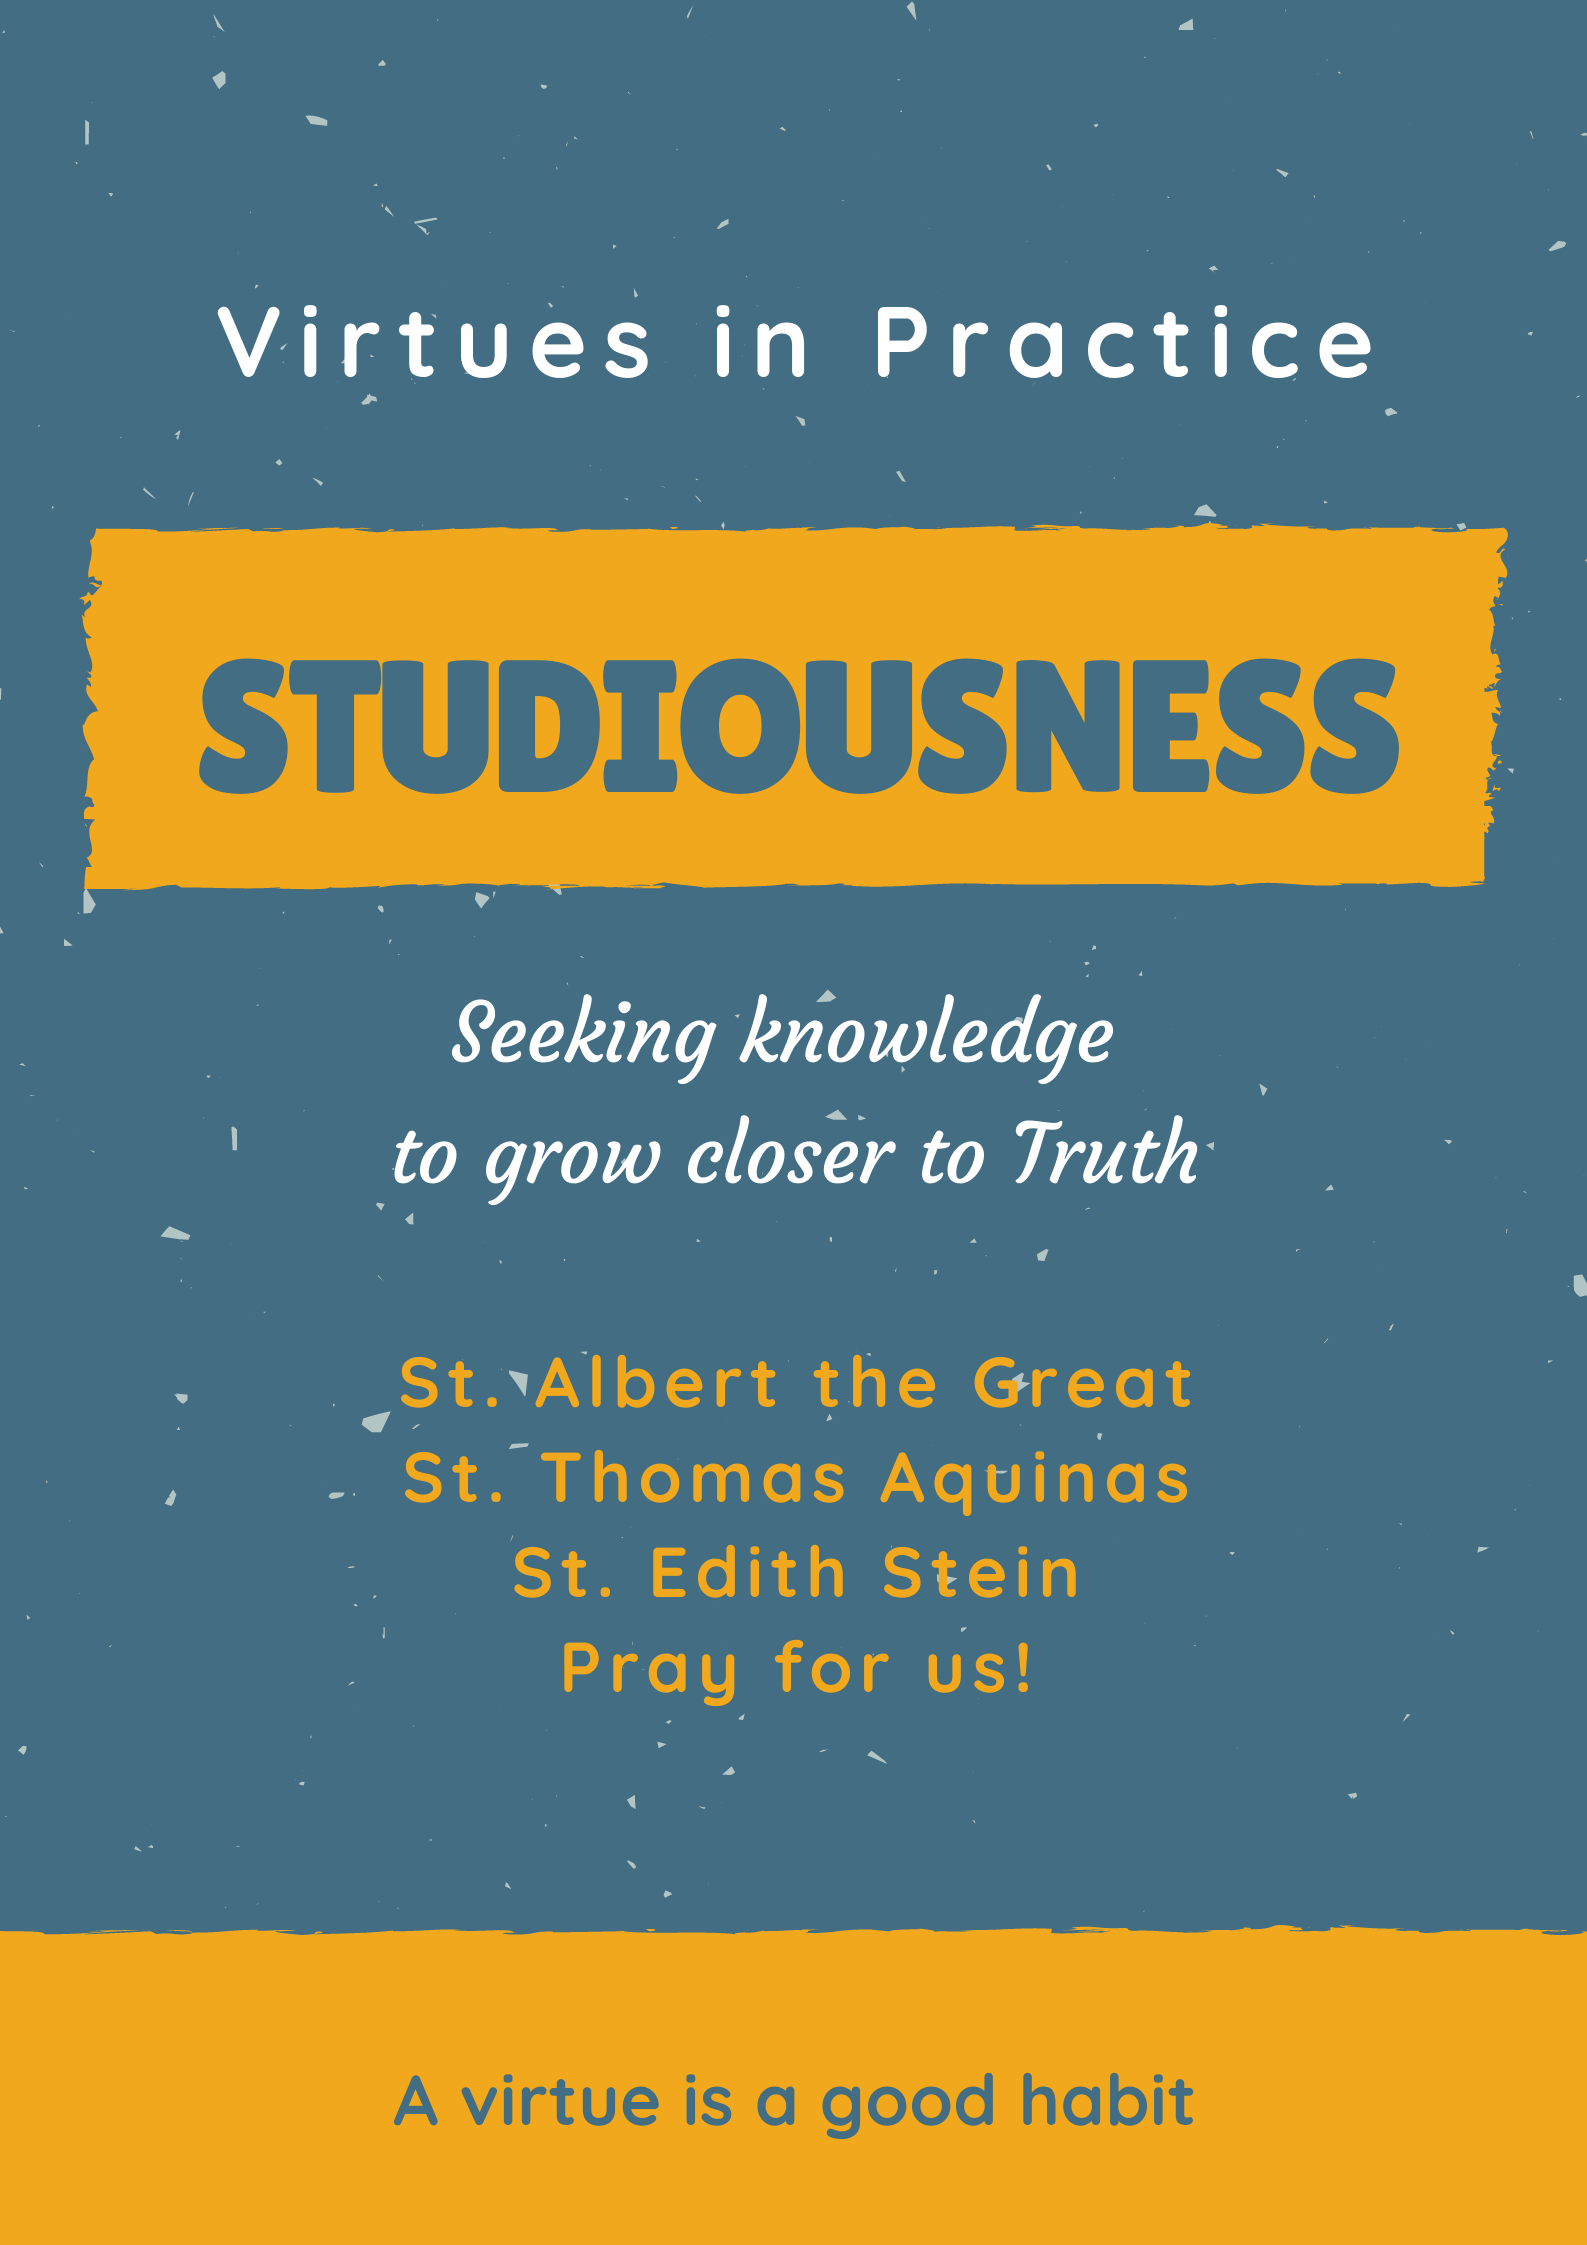 Virtue of Studiousness